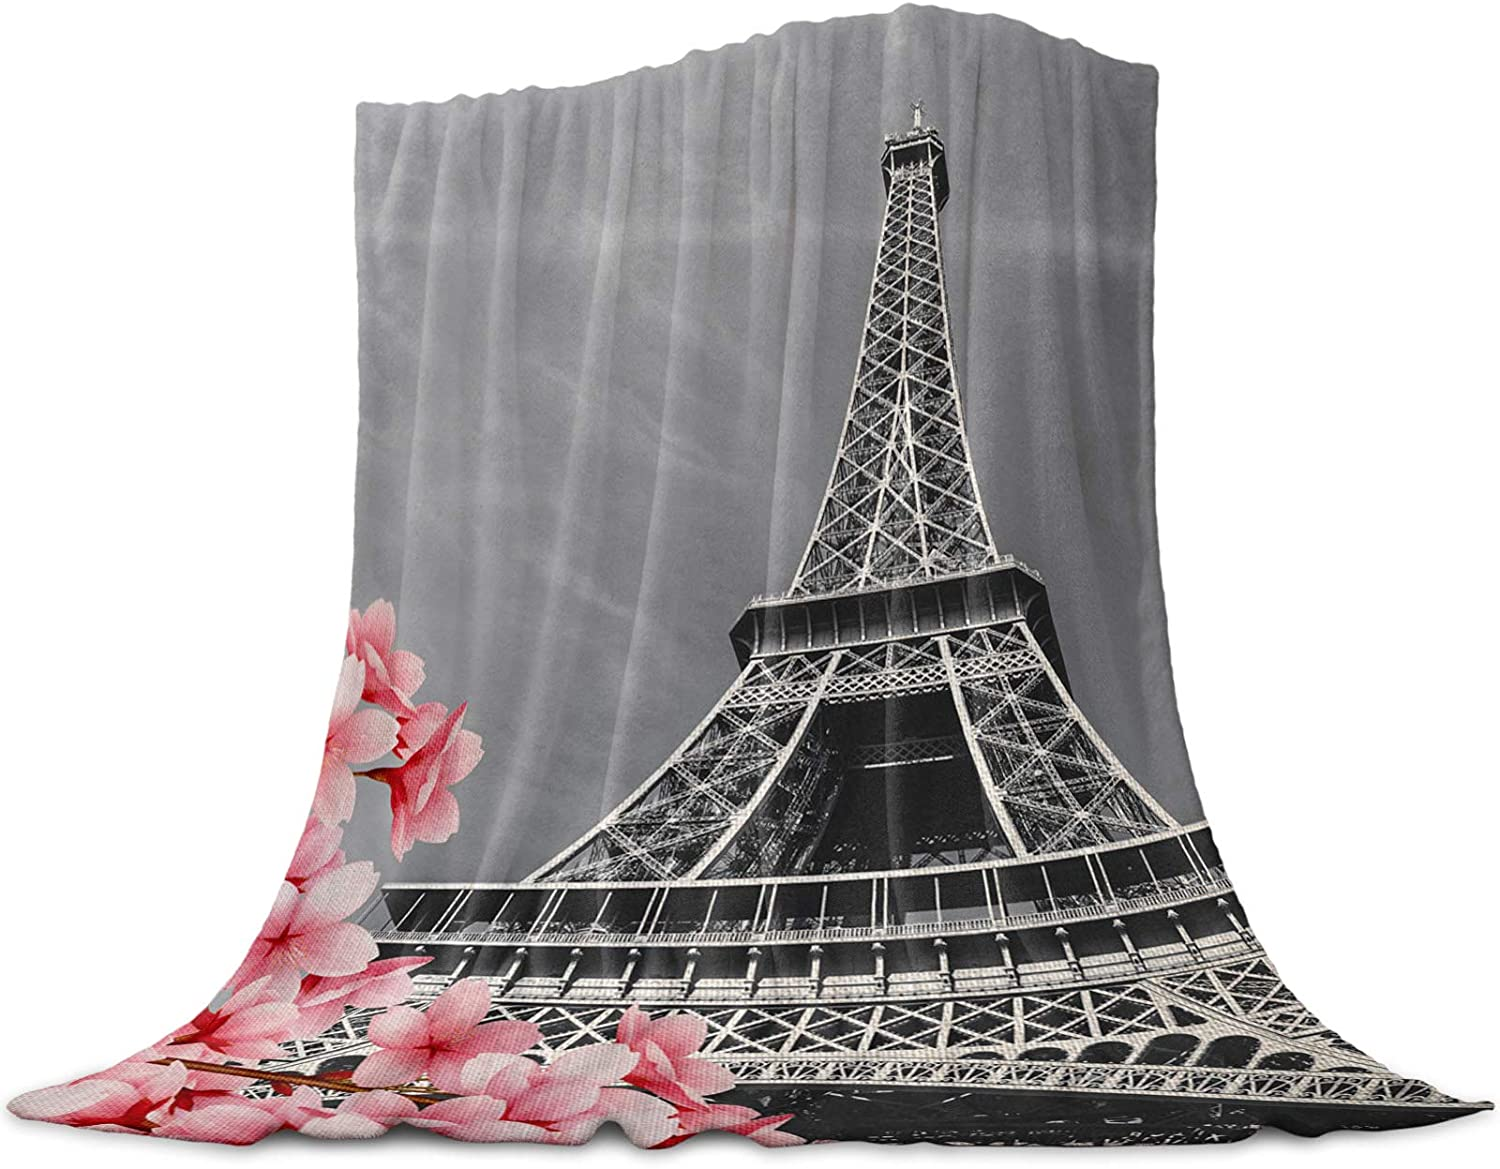 LEO BON Soft Warmer Throw Blankets Black for Clearance SALE Limited time Max 51% OFF Whit All Season and